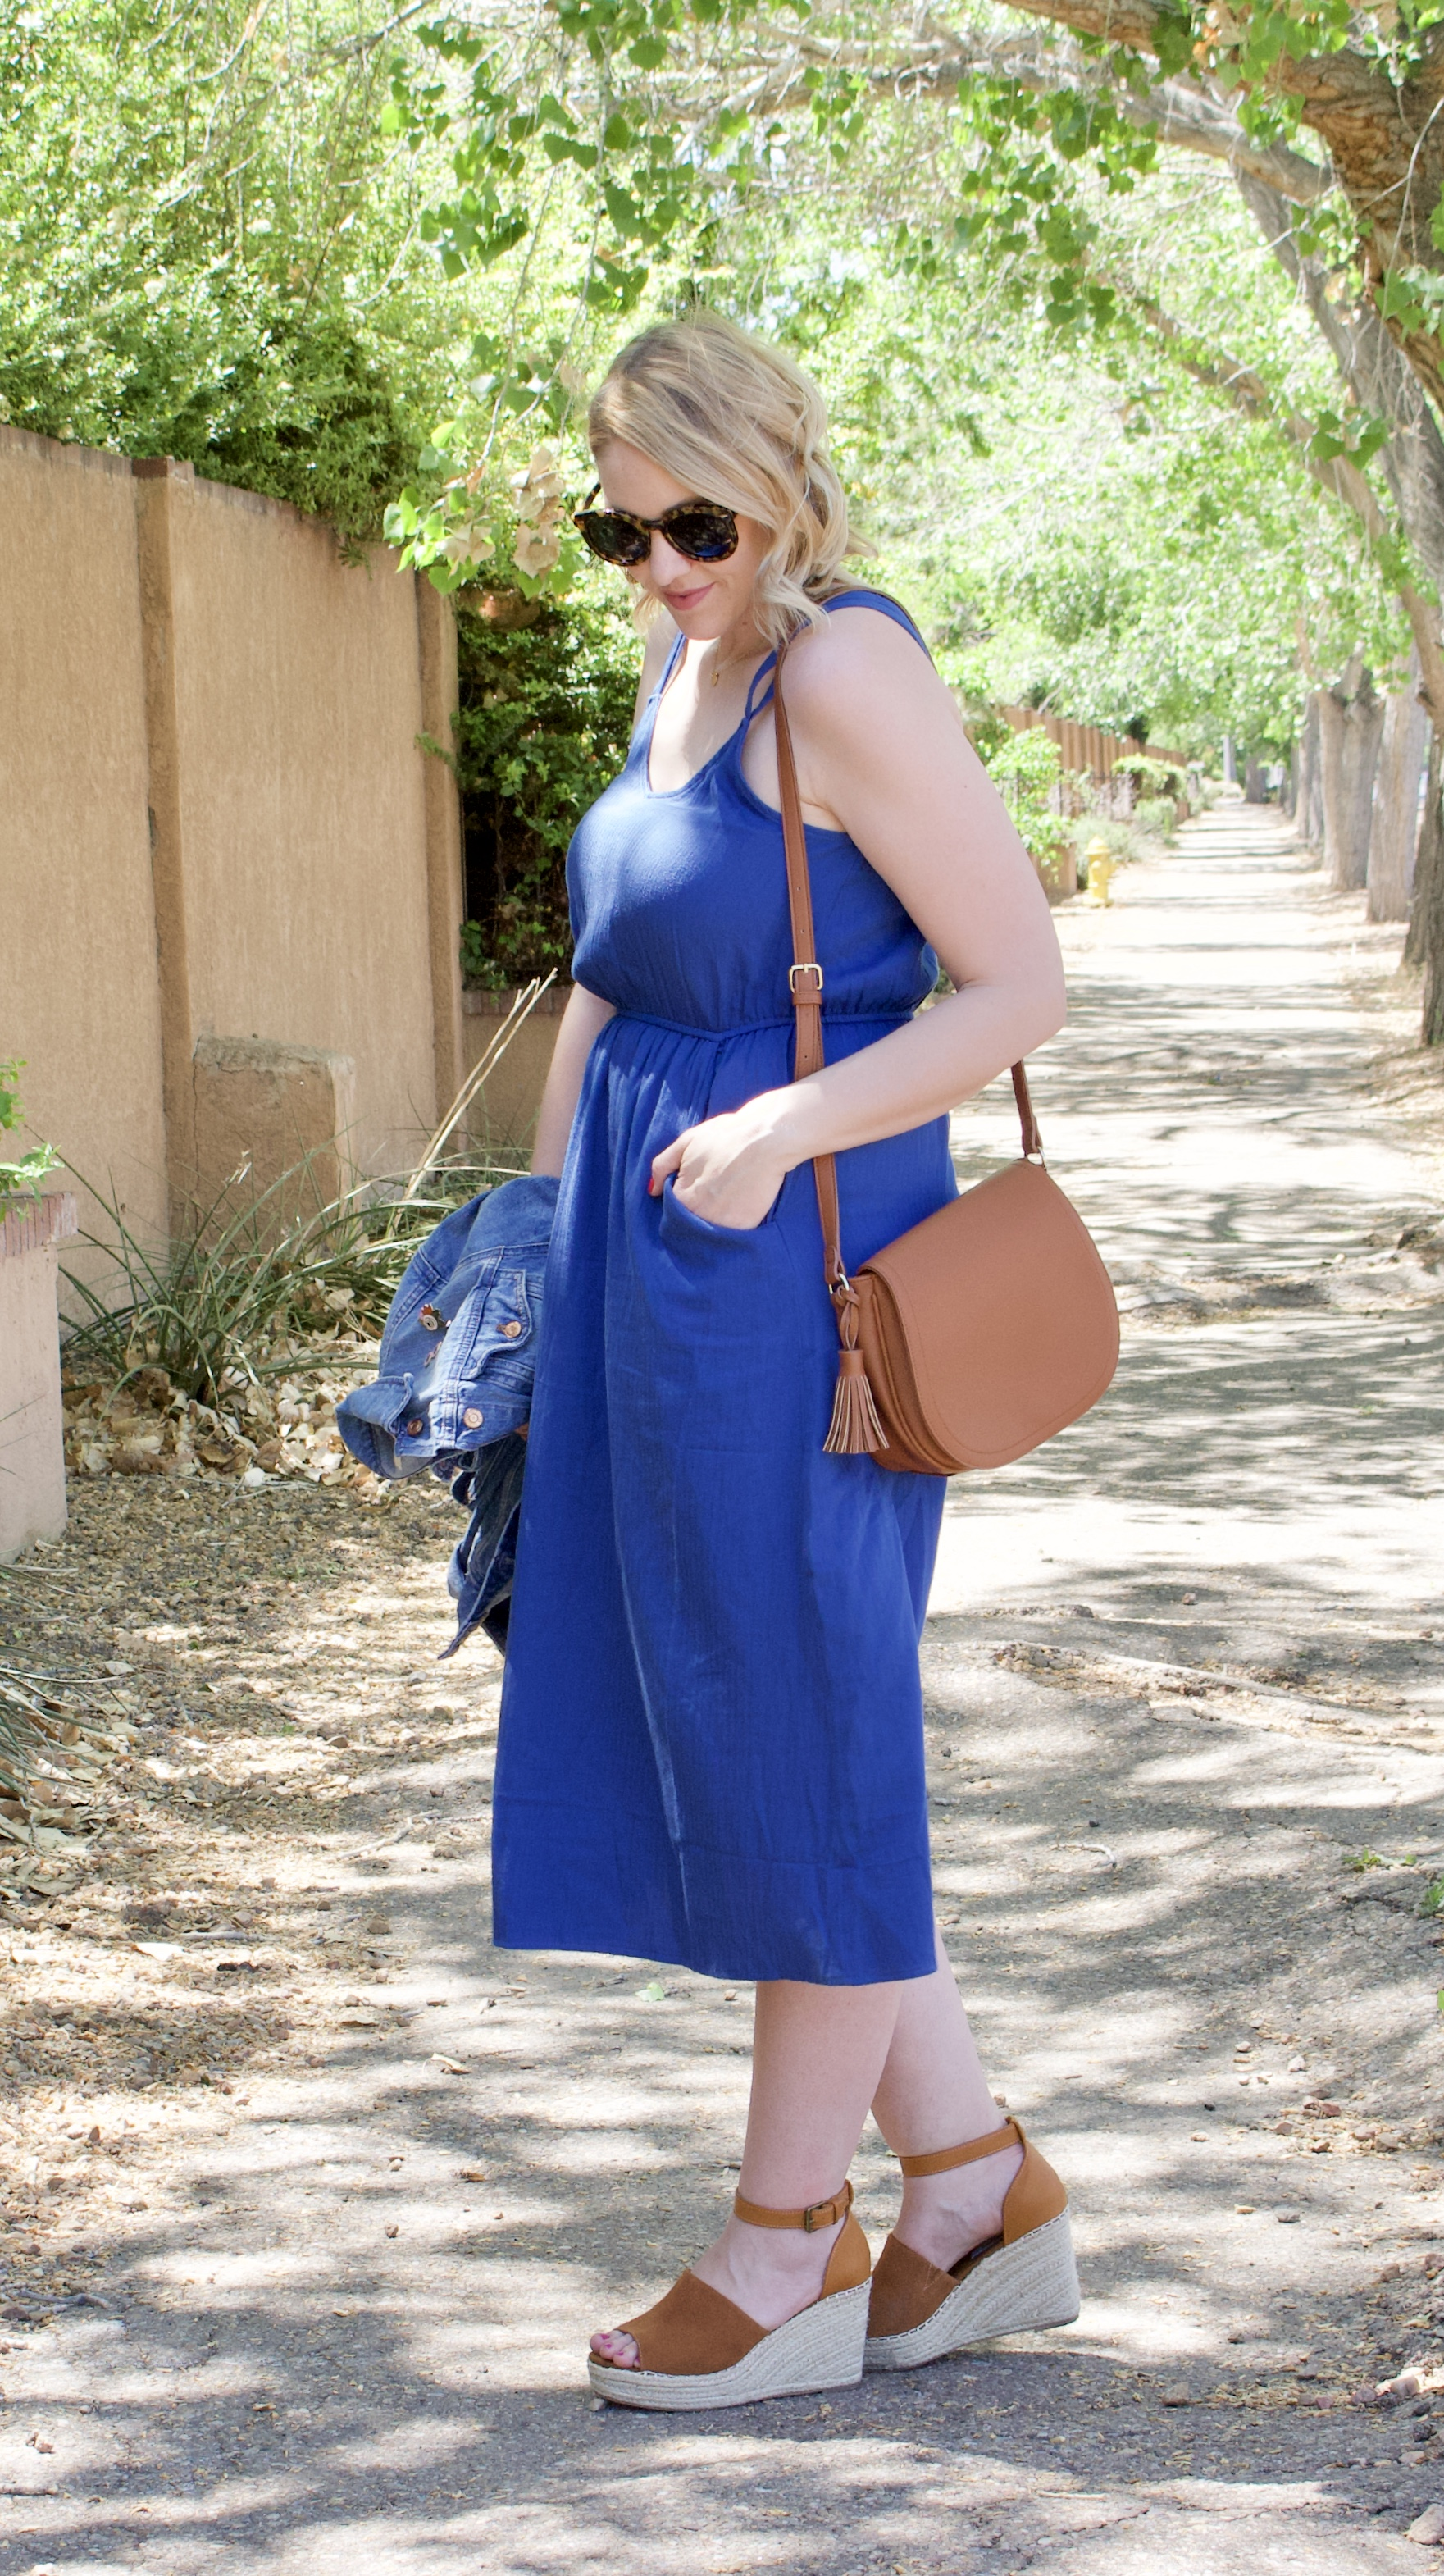 midi dress for mother's day outfit #mothersday #momstyle #mididress